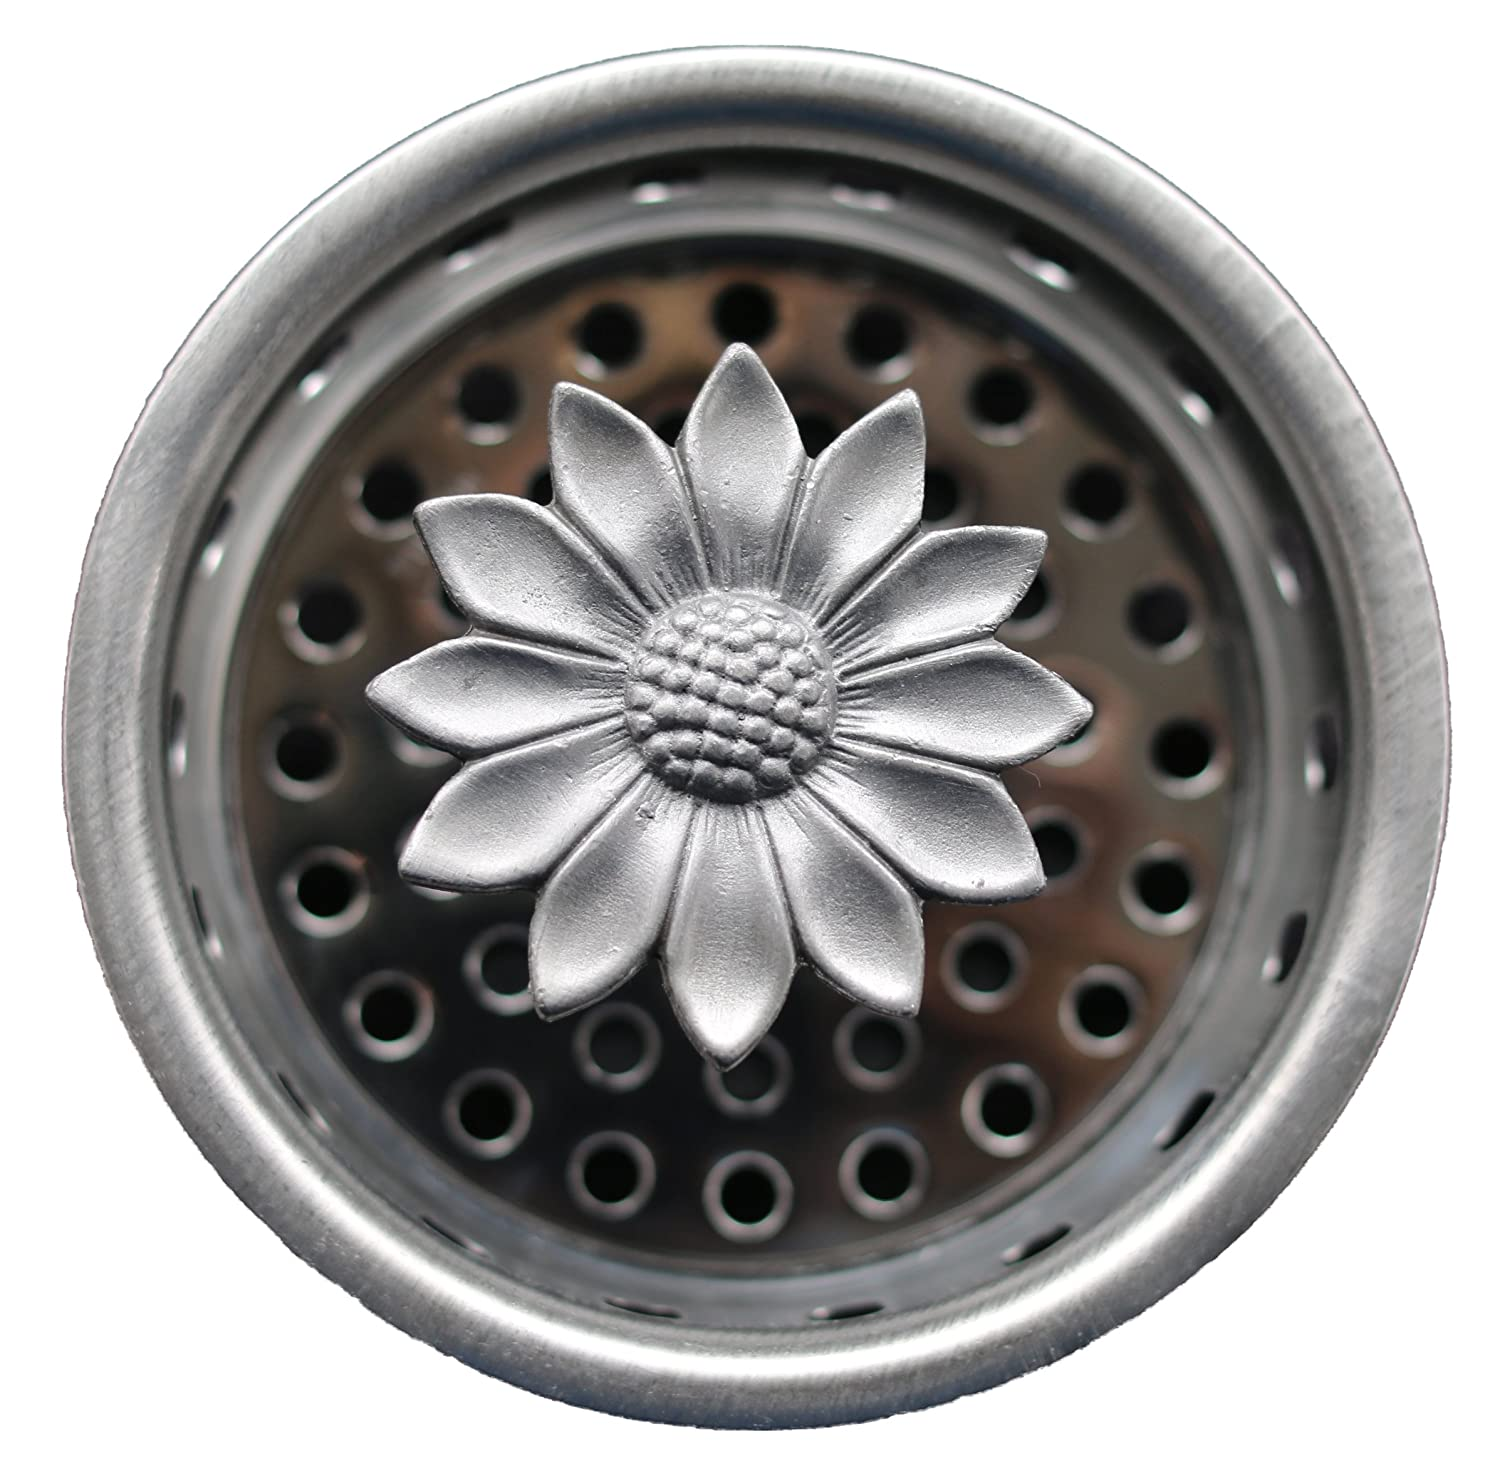 "Kitchen Sink Strainer & Stopper ~ Decorative Pewter Top - Sunflower ~ Stainless Steel Basket, Strains and Plugs any Standard Sink Drain (3.25"")"